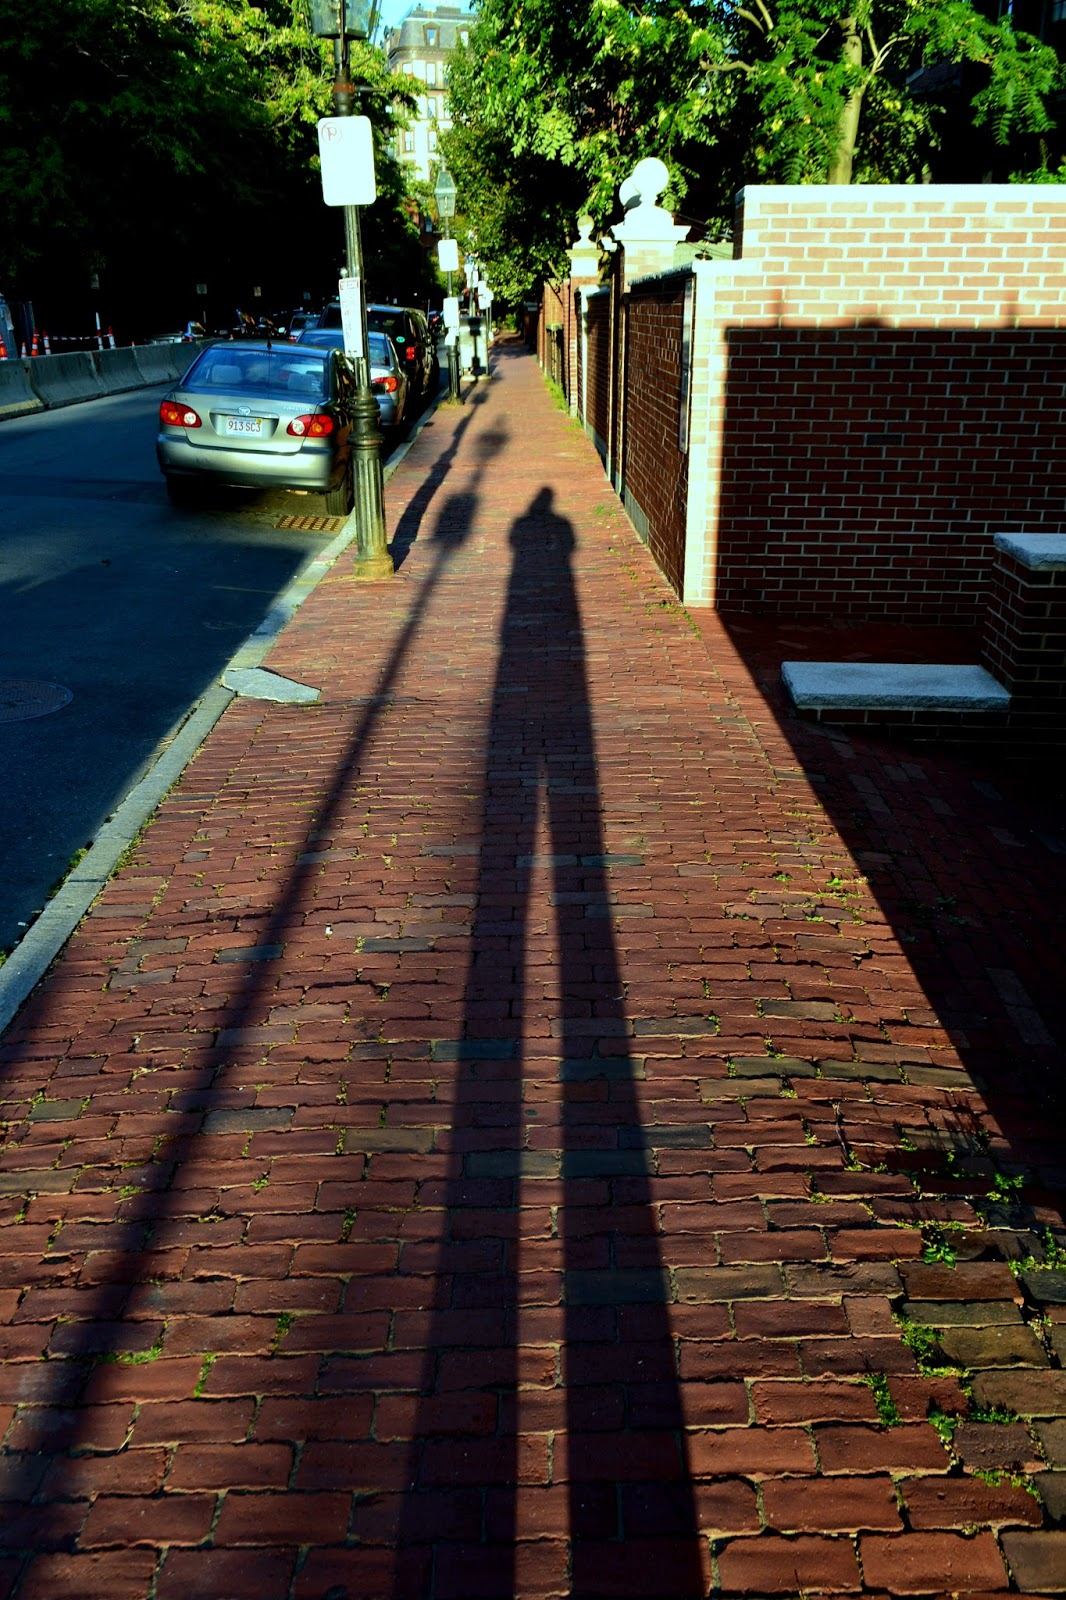 shadowshot, shadow, selfie, brick, sidewalk, boston